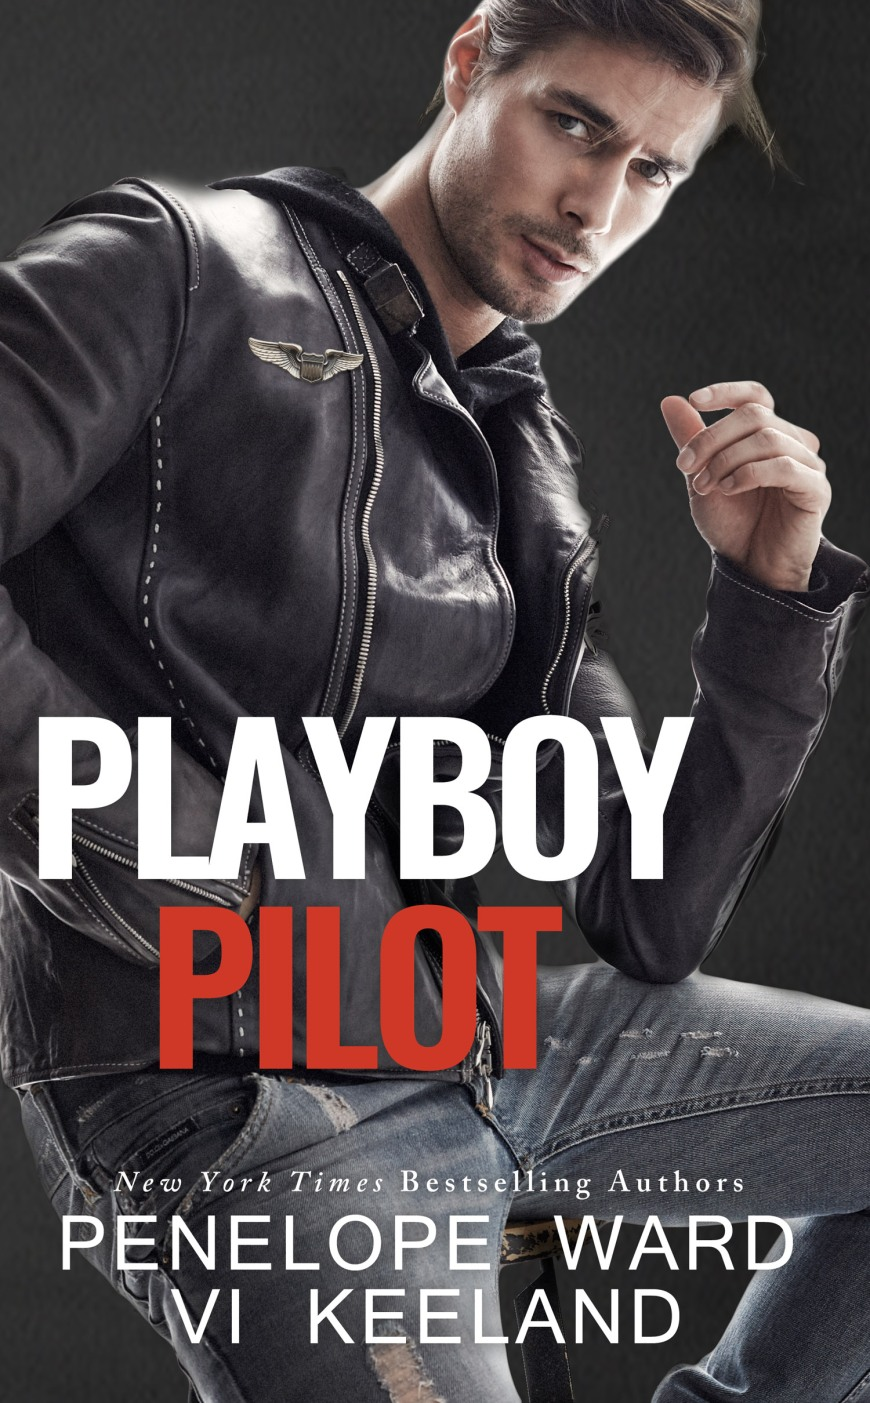 PlayboyPilotBookCover5x8_MEDIUM